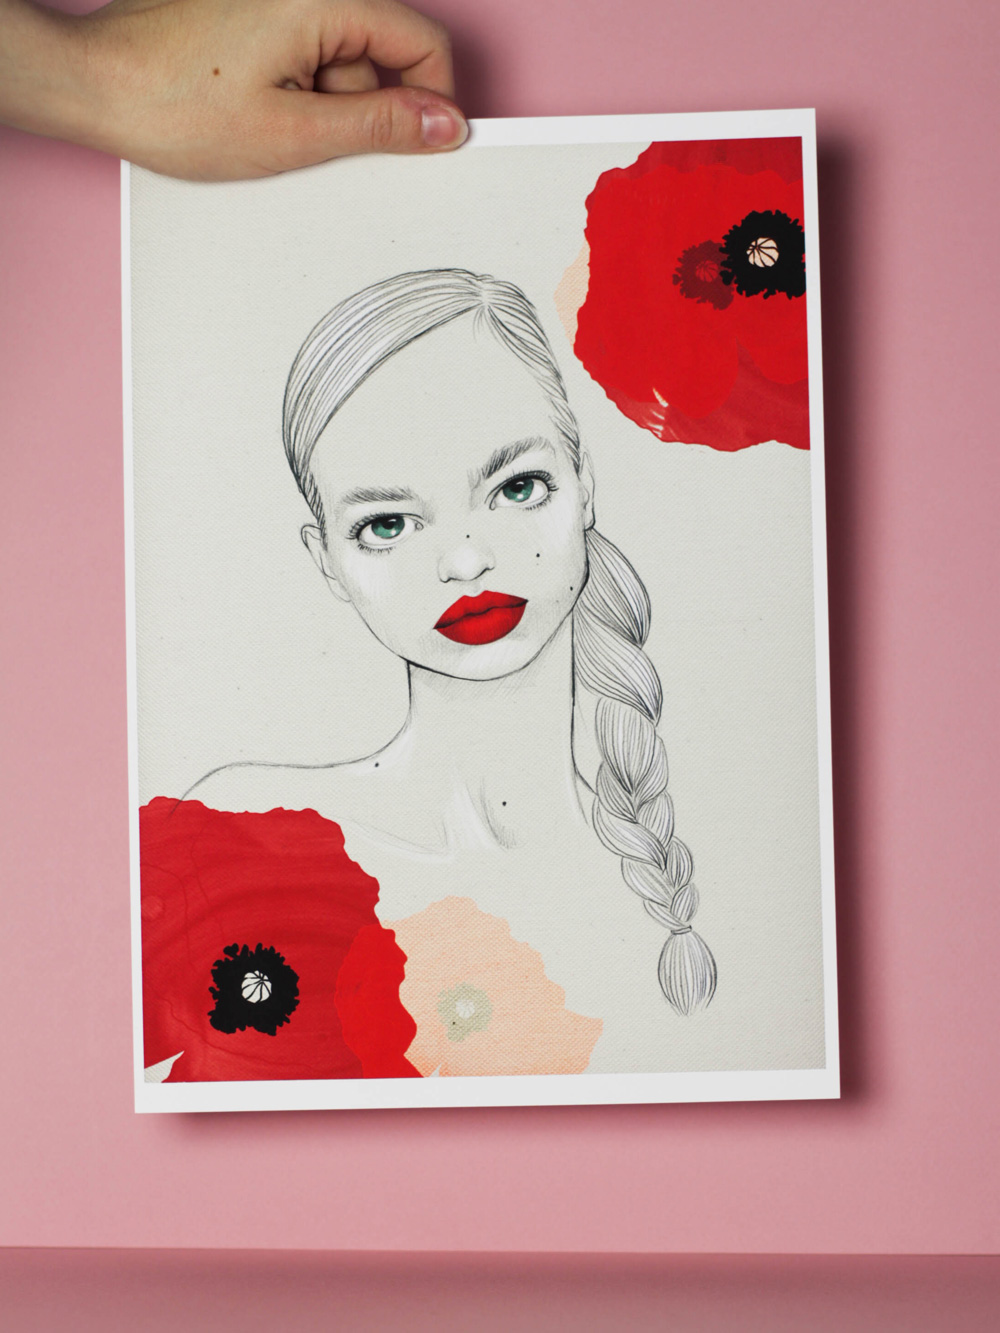 shop-mademoiselle-stef-dessin-coquelicots